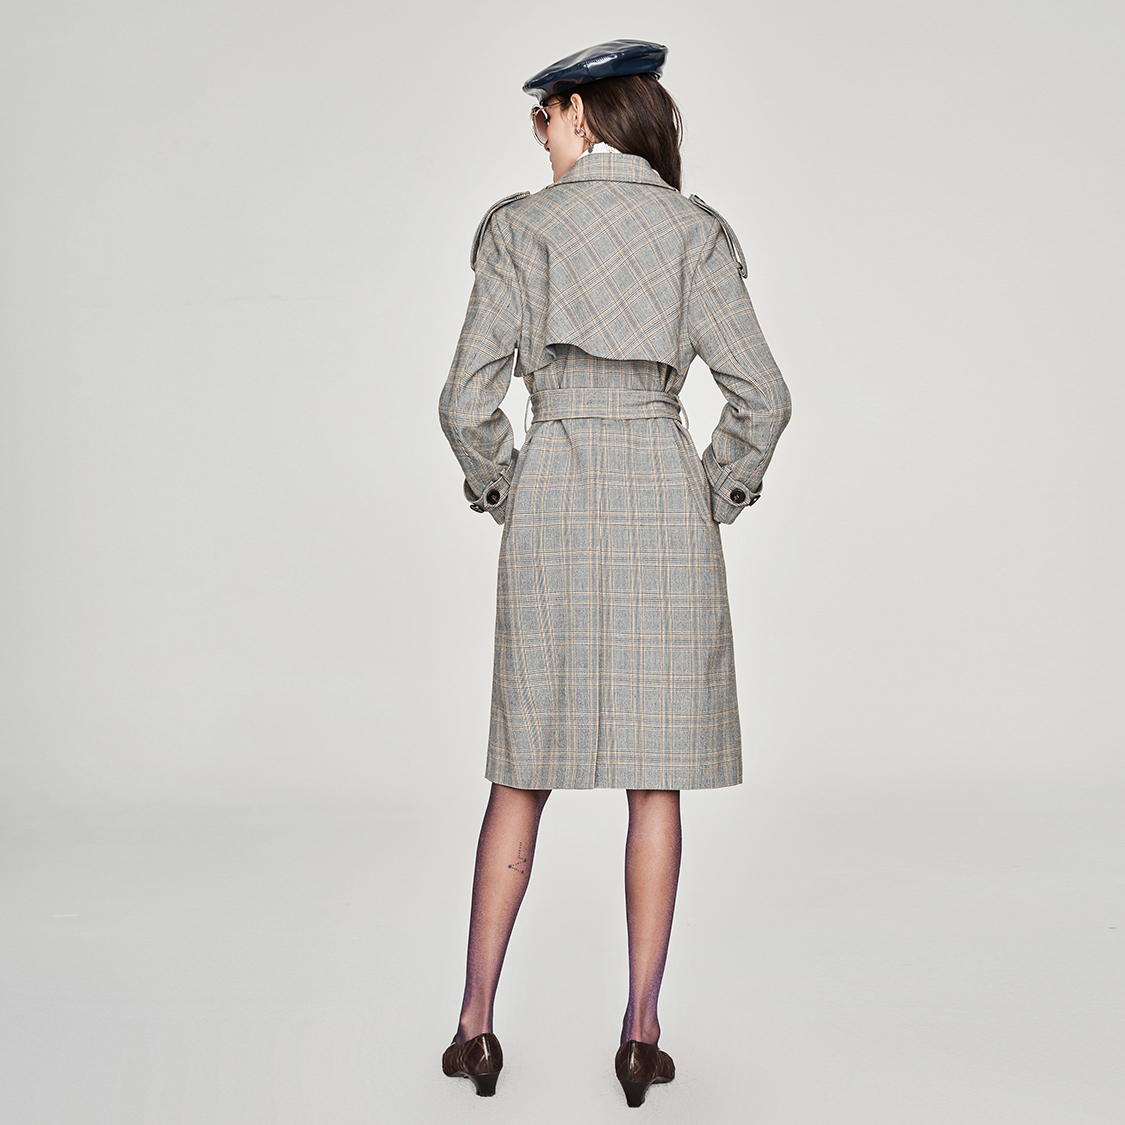 JAZZEVAR new 2019 Autumn Fashion Street Casual Women's Vintage plaid Double Breasted Trench coat Outerwear High Quality